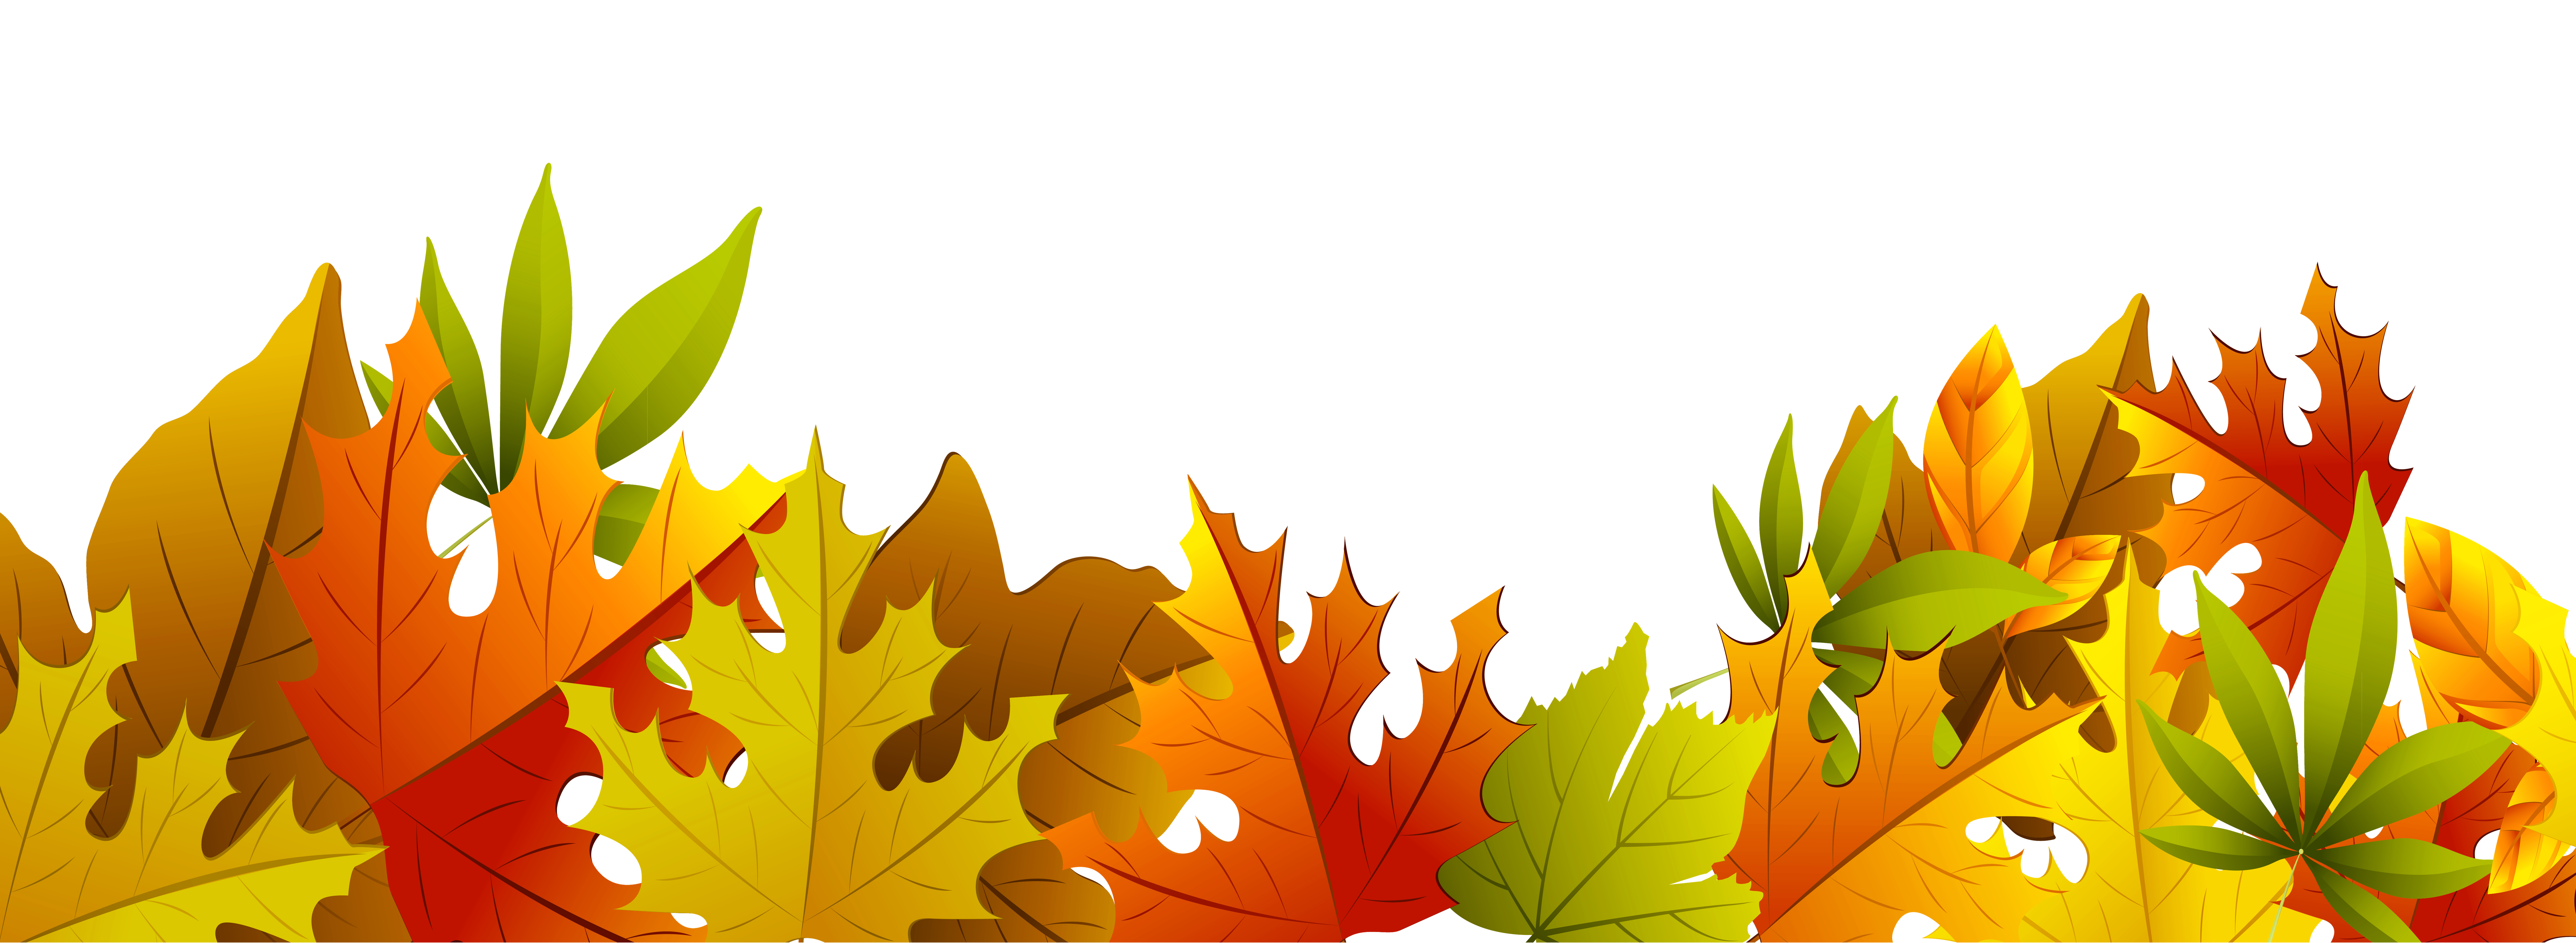 Autumn Leaves Clipart & Autumn Leaves Clip Art Images.